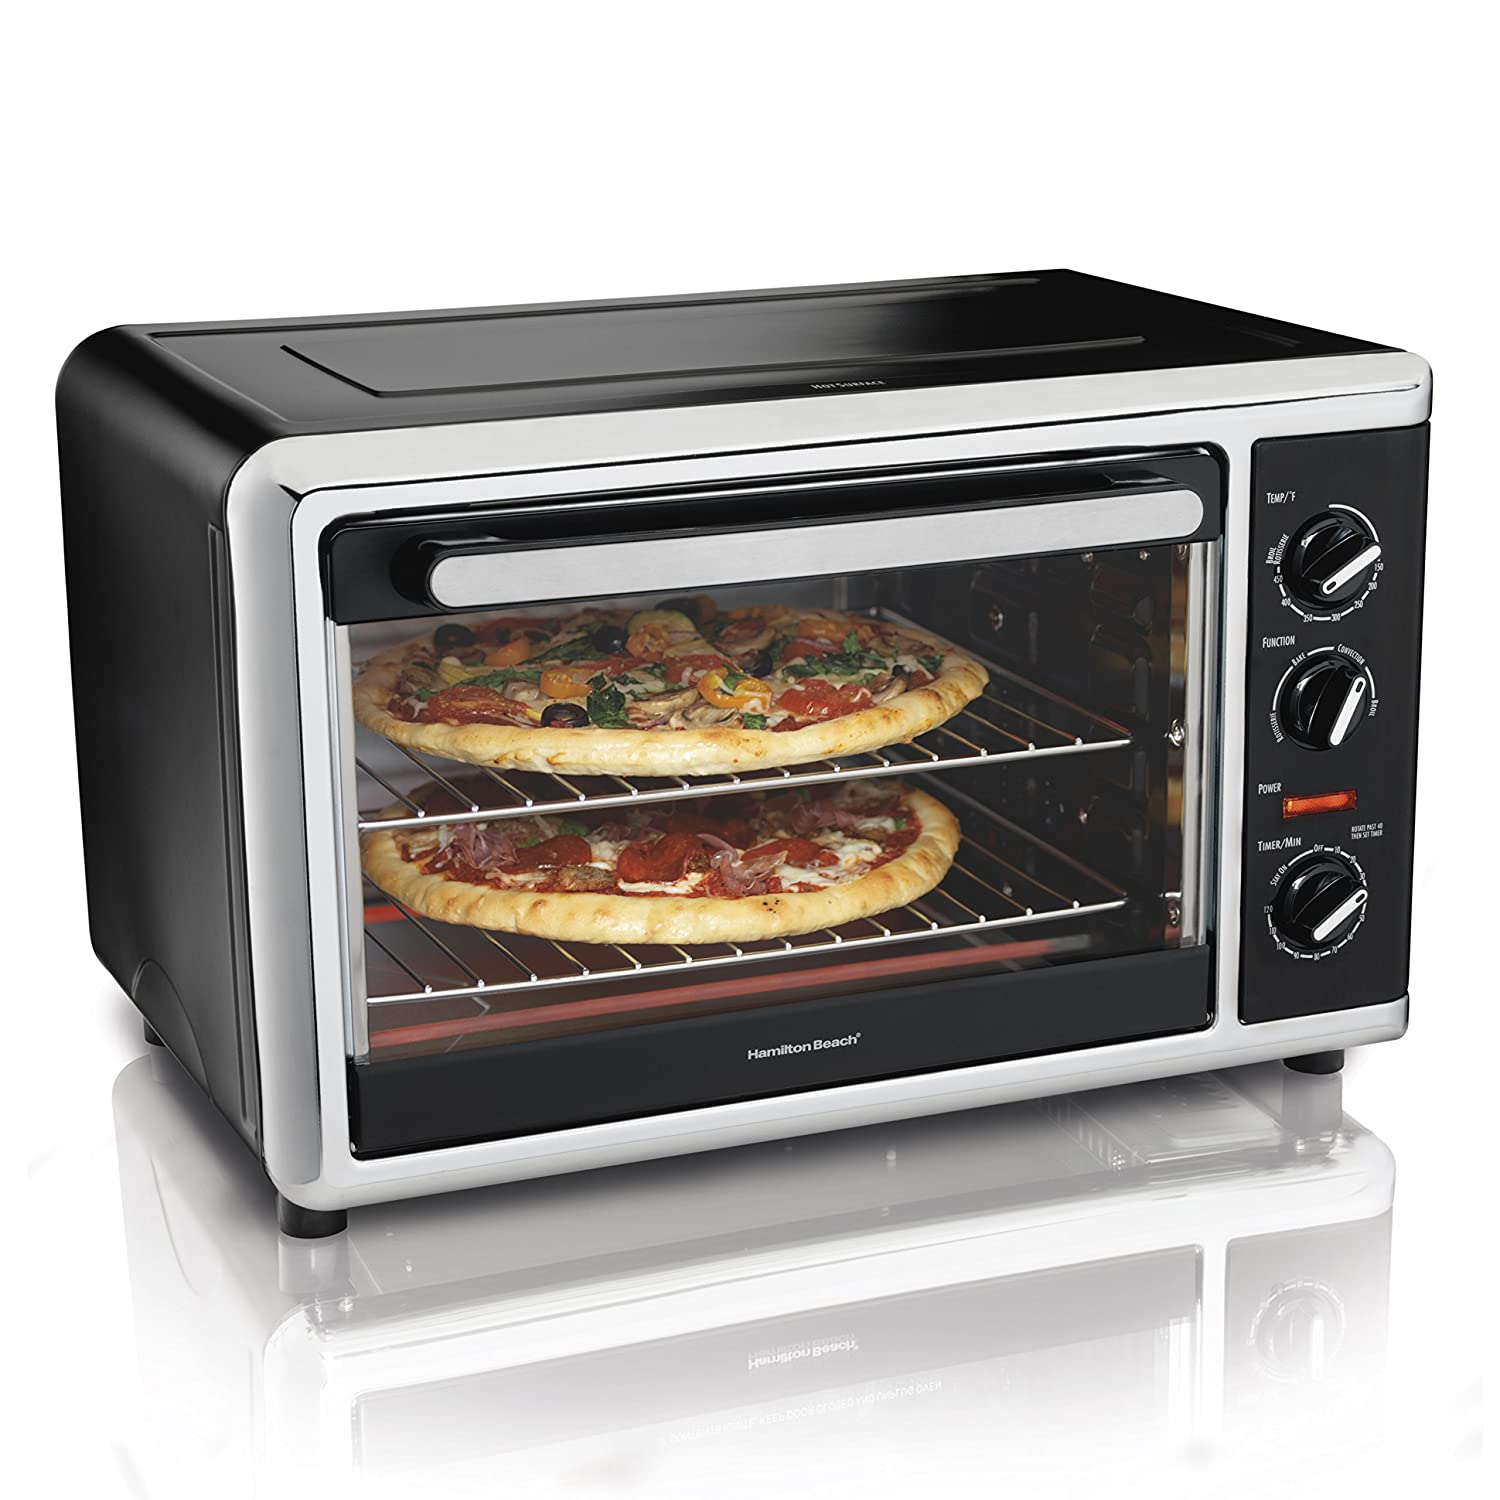 com sasayuki deck in oven ovens single commercial waring on pizza for countertops fine lovely countertop